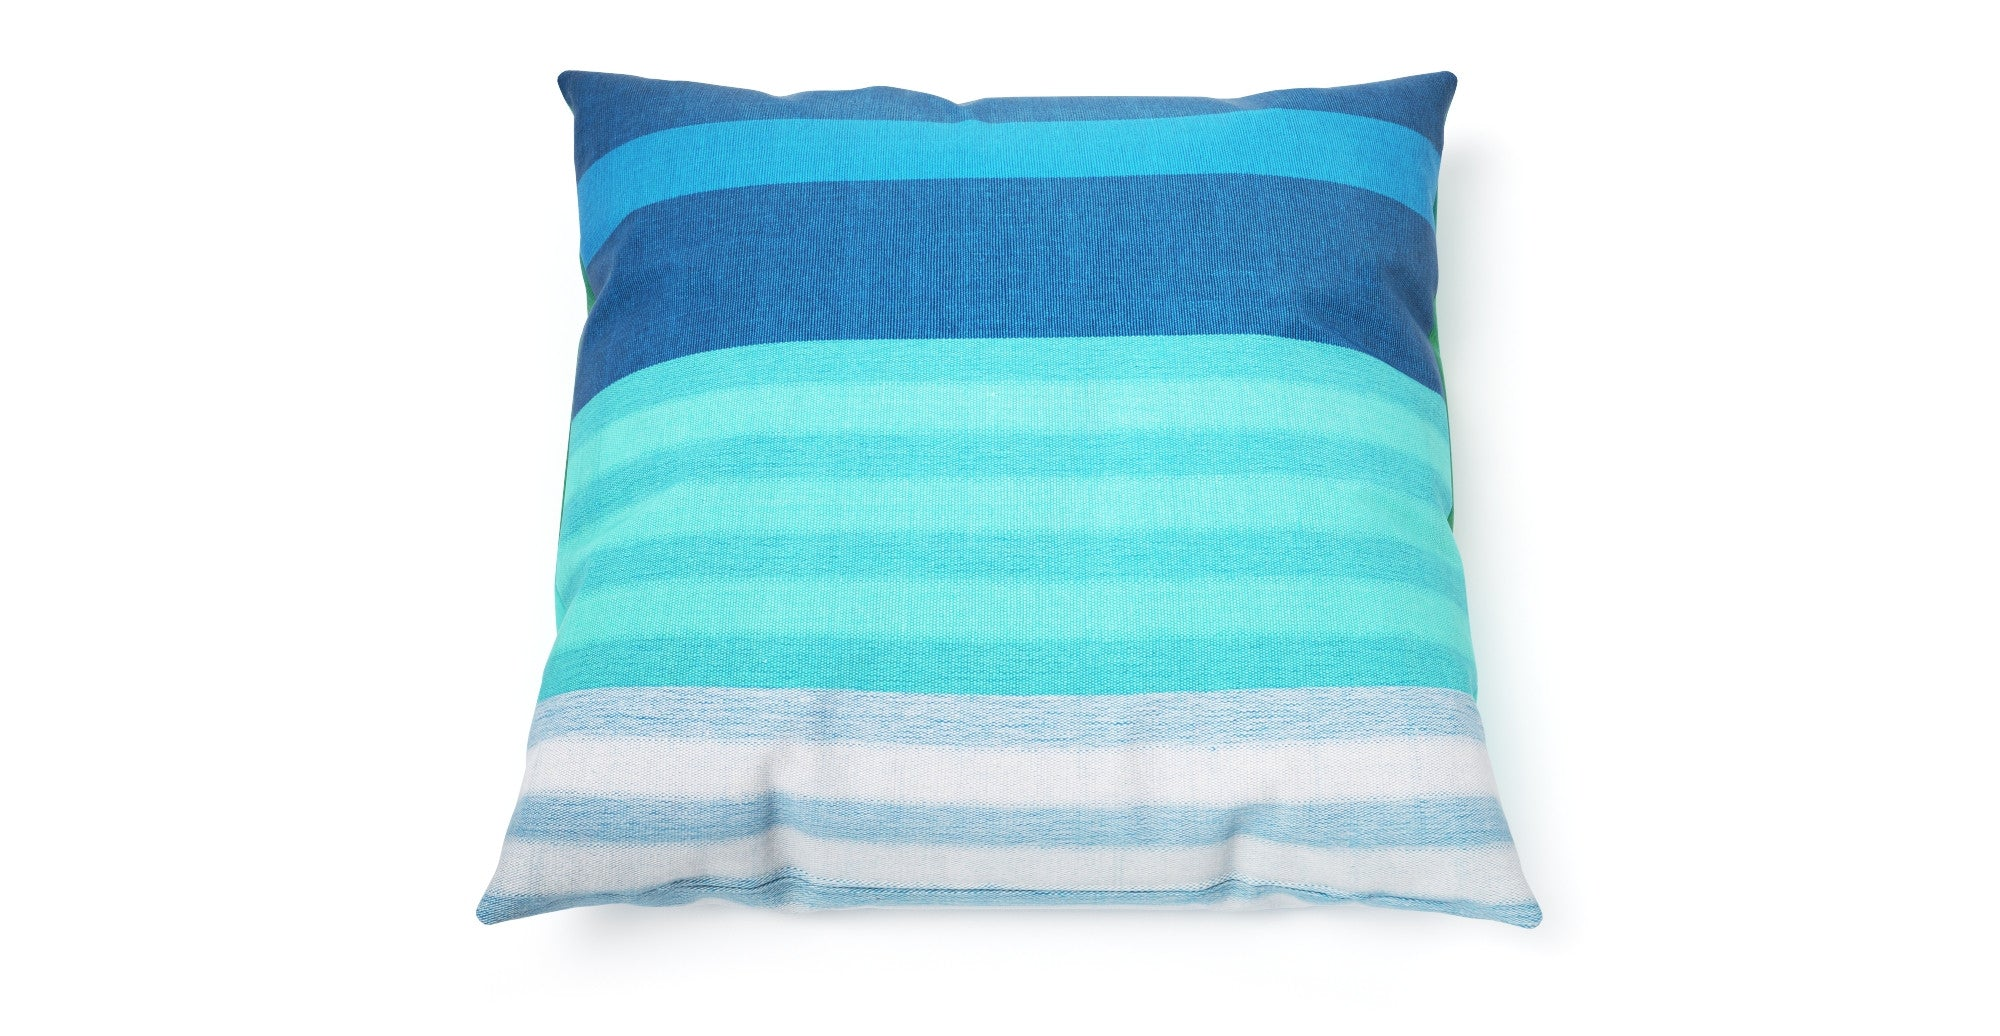 Spacecraft Handloom Aquamarine Cushion